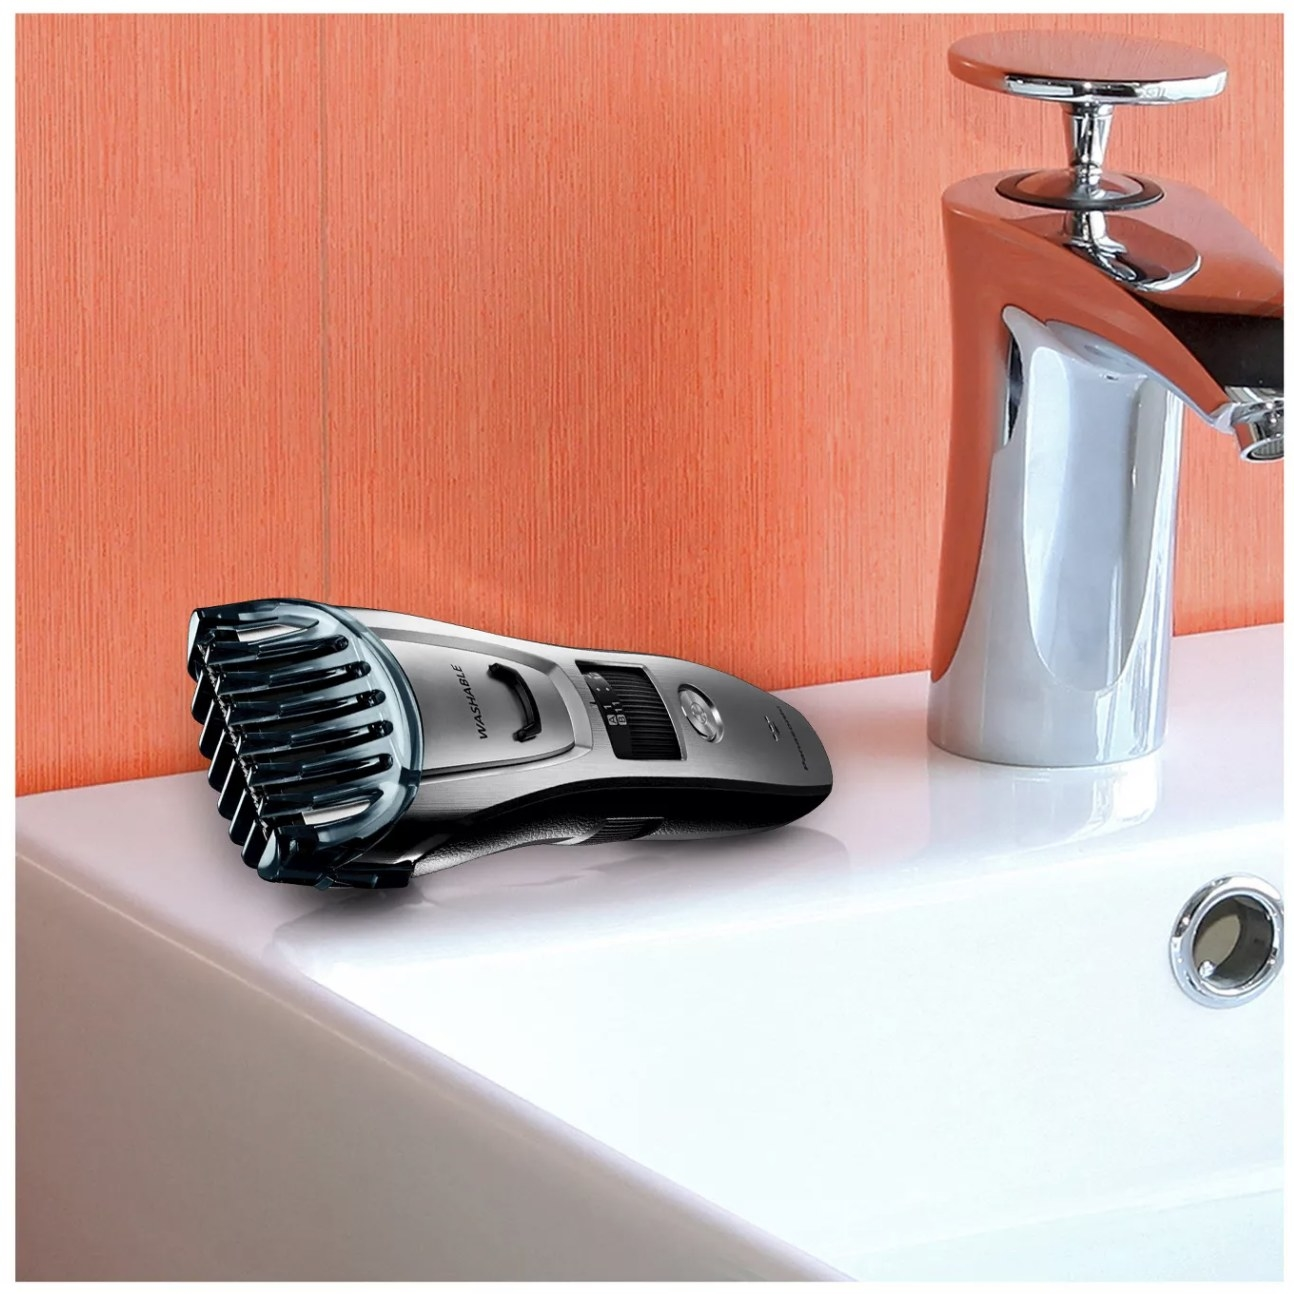 Beard trimmer sits on top of the bathroom sink